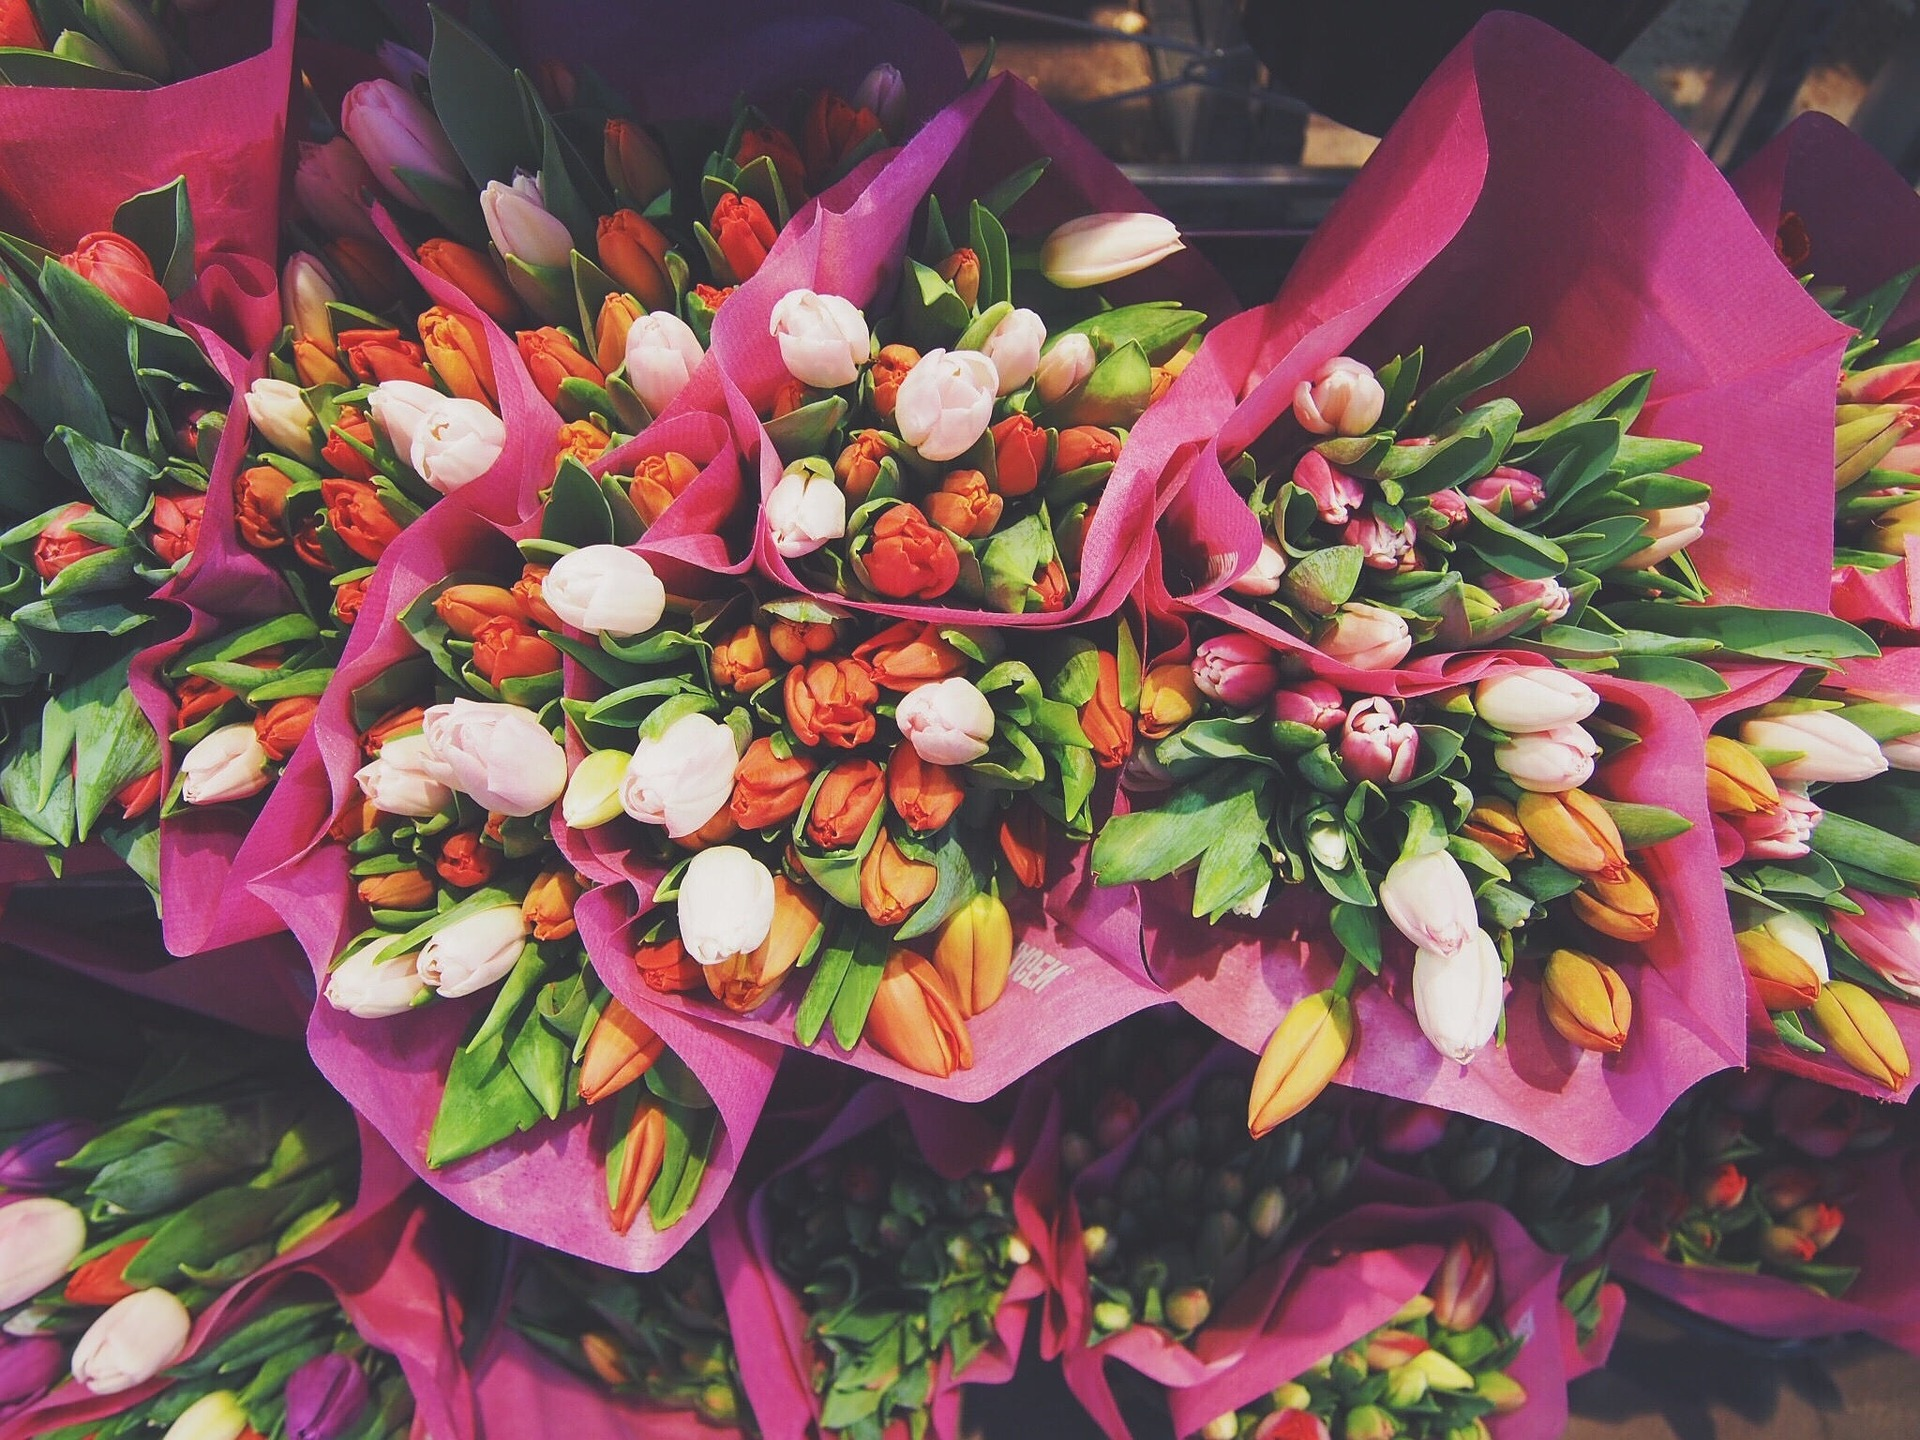 Buying From a Florist vs. a Supermarket